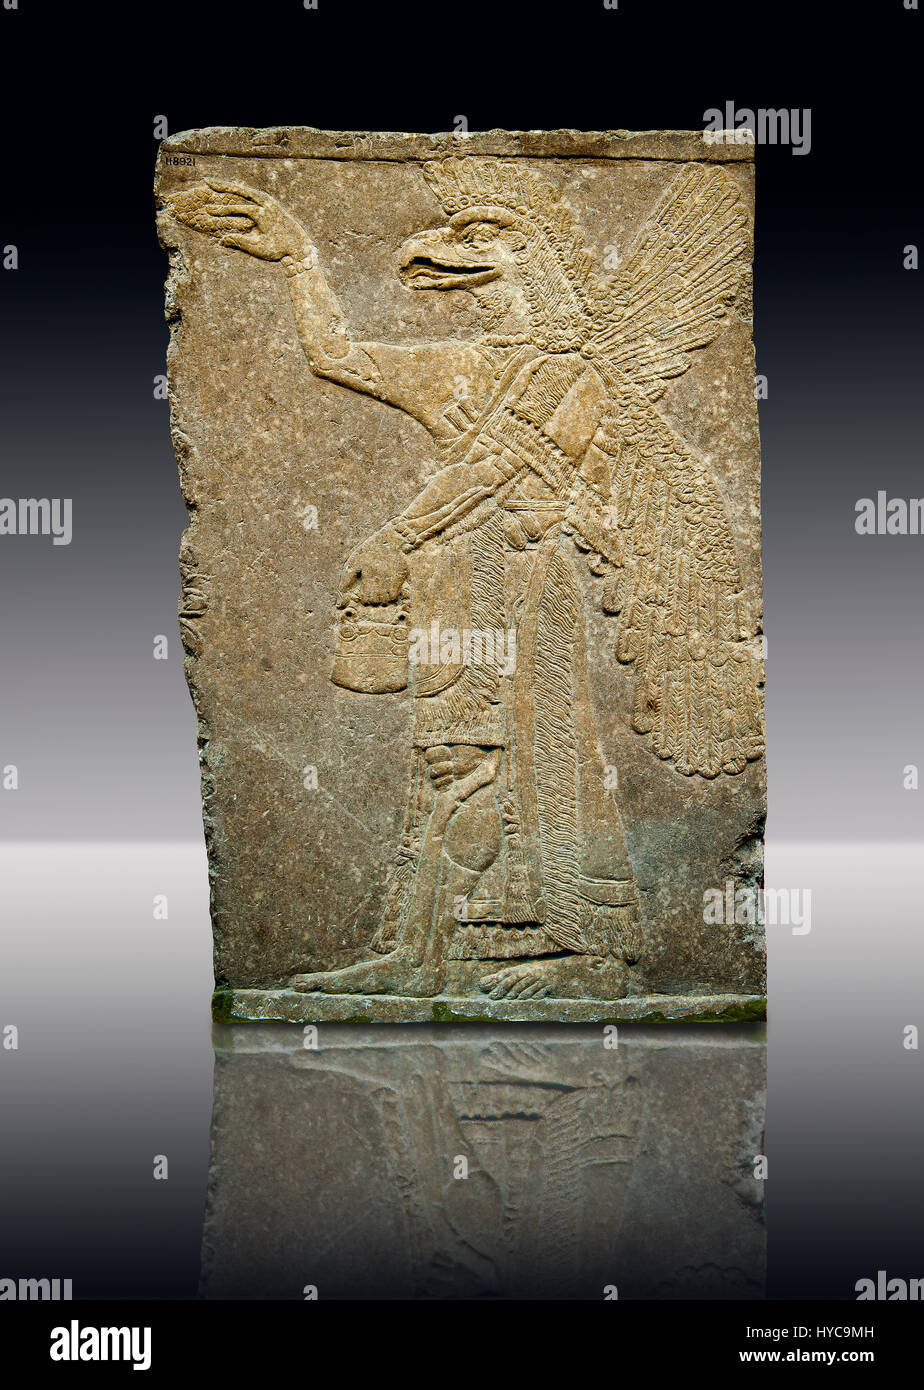 Assyrian relief sculpture panel of a protective spirit with an eagles Head from Nimrud, Iraq.  The spirit is holding Stock Photo